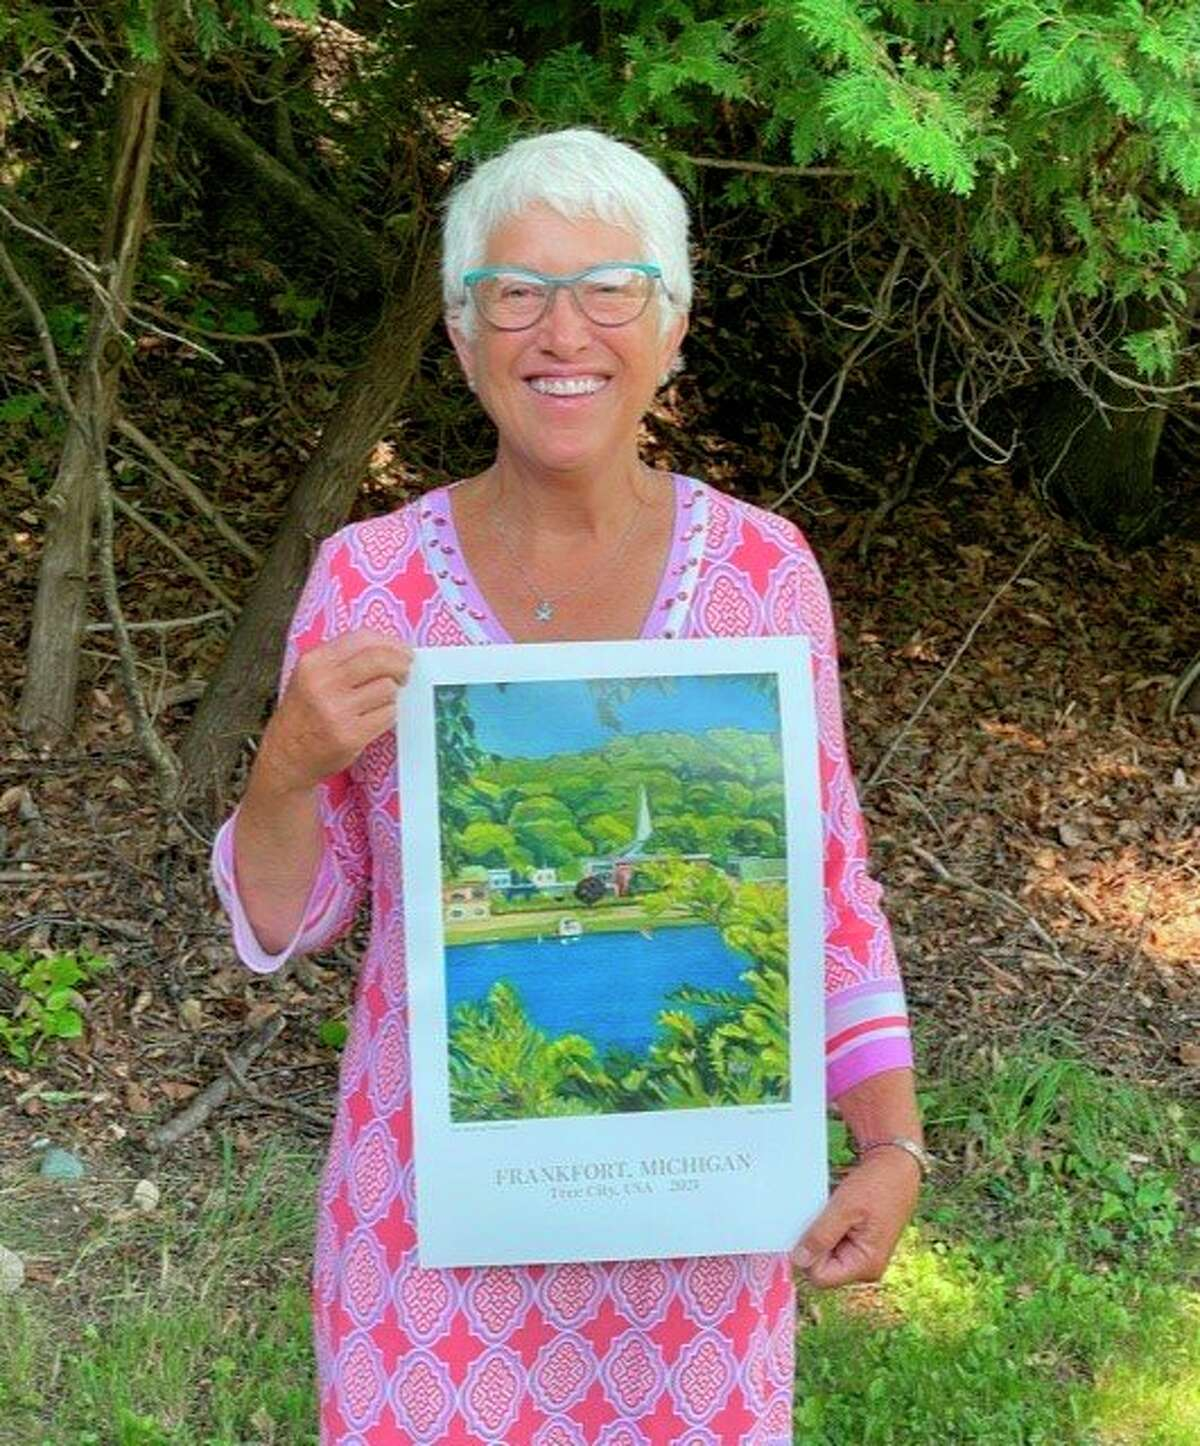 """Karen Williams' with her piece """"Heart of Frankfort,"""" which was chosen to be Frankfort's next Tree City poster. (Courtesy Photo)"""